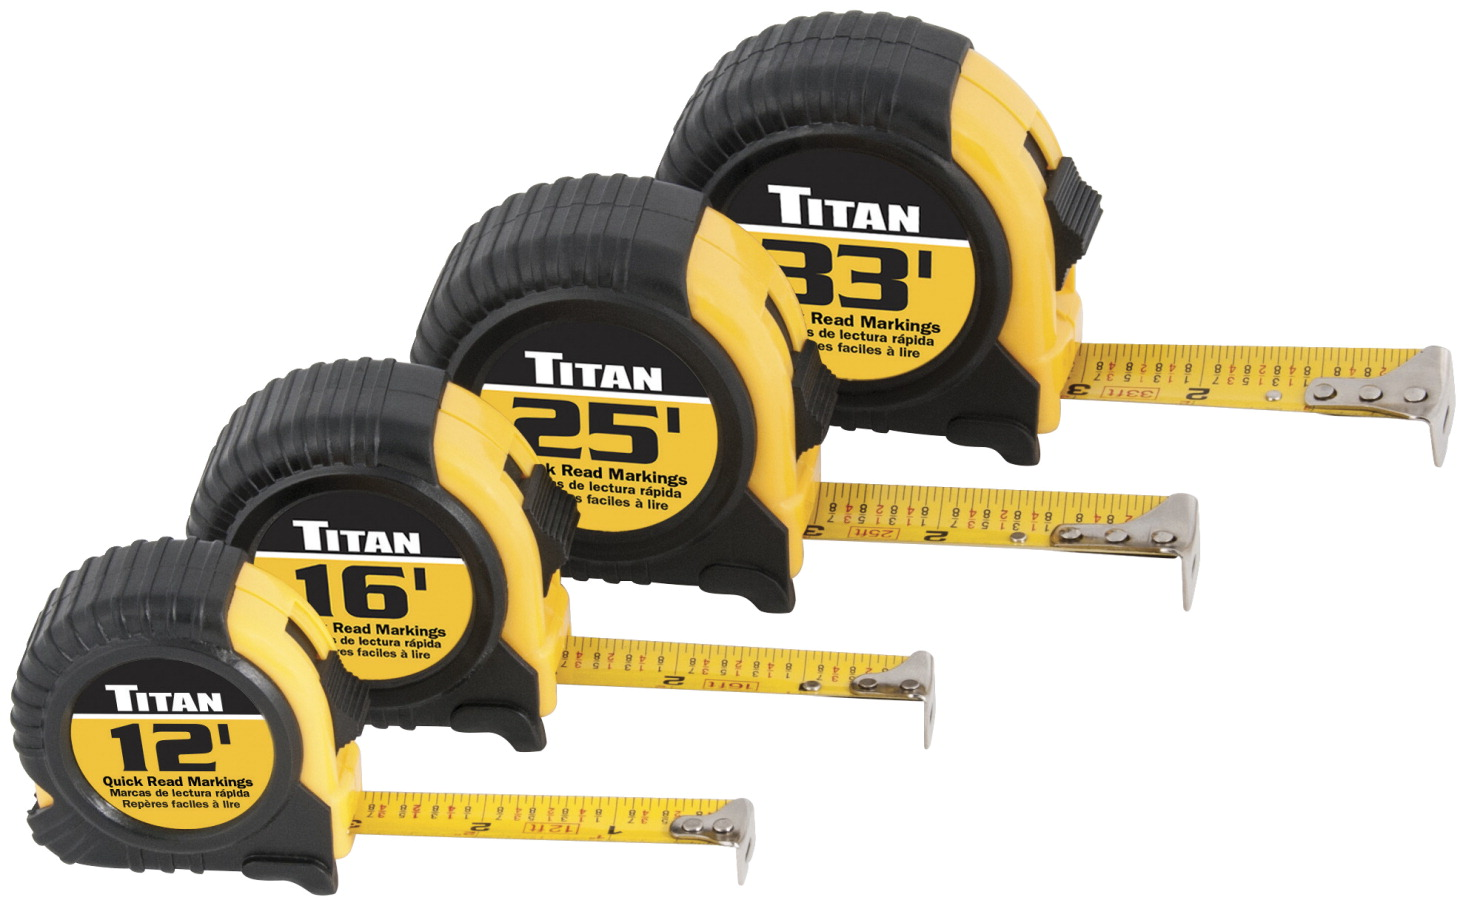 Titan Tape Rules, 4 Pack - 12 ft, 16 ft, 25 ft, and 33 ft